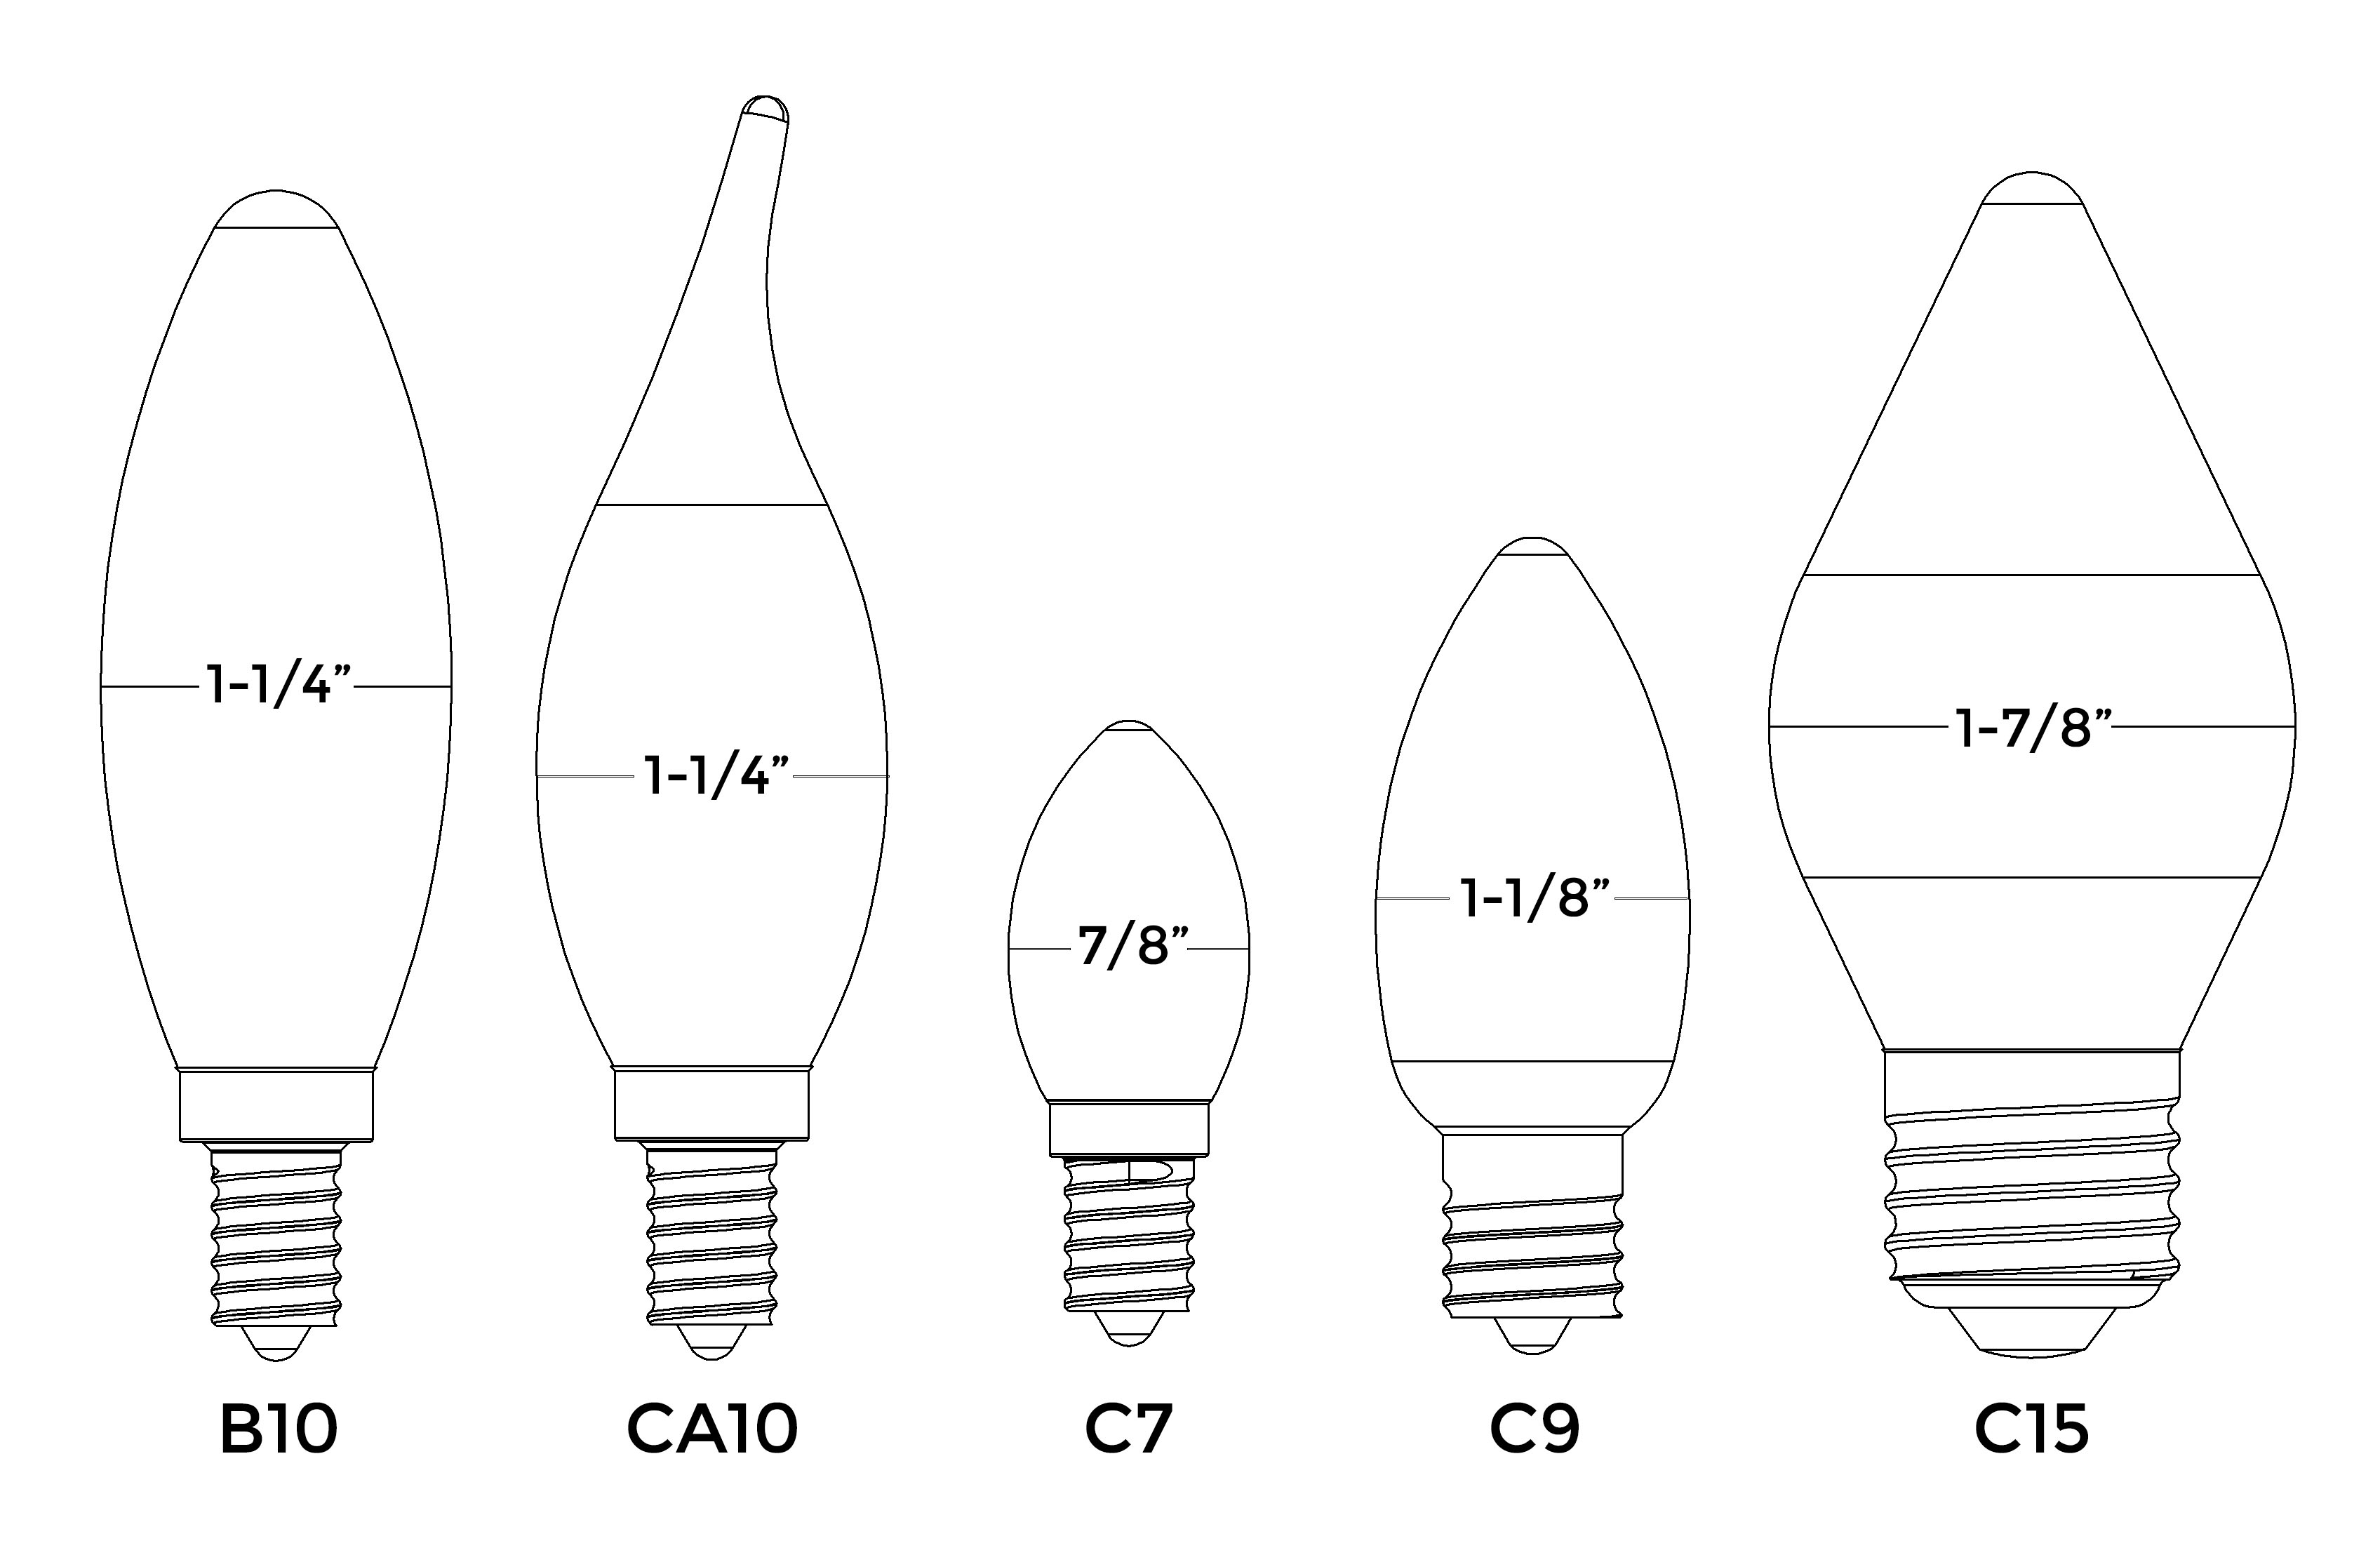 Ceiling Fan Size For Garage Home Lighting 101 A Guide To Understanding Light Bulb Shapes